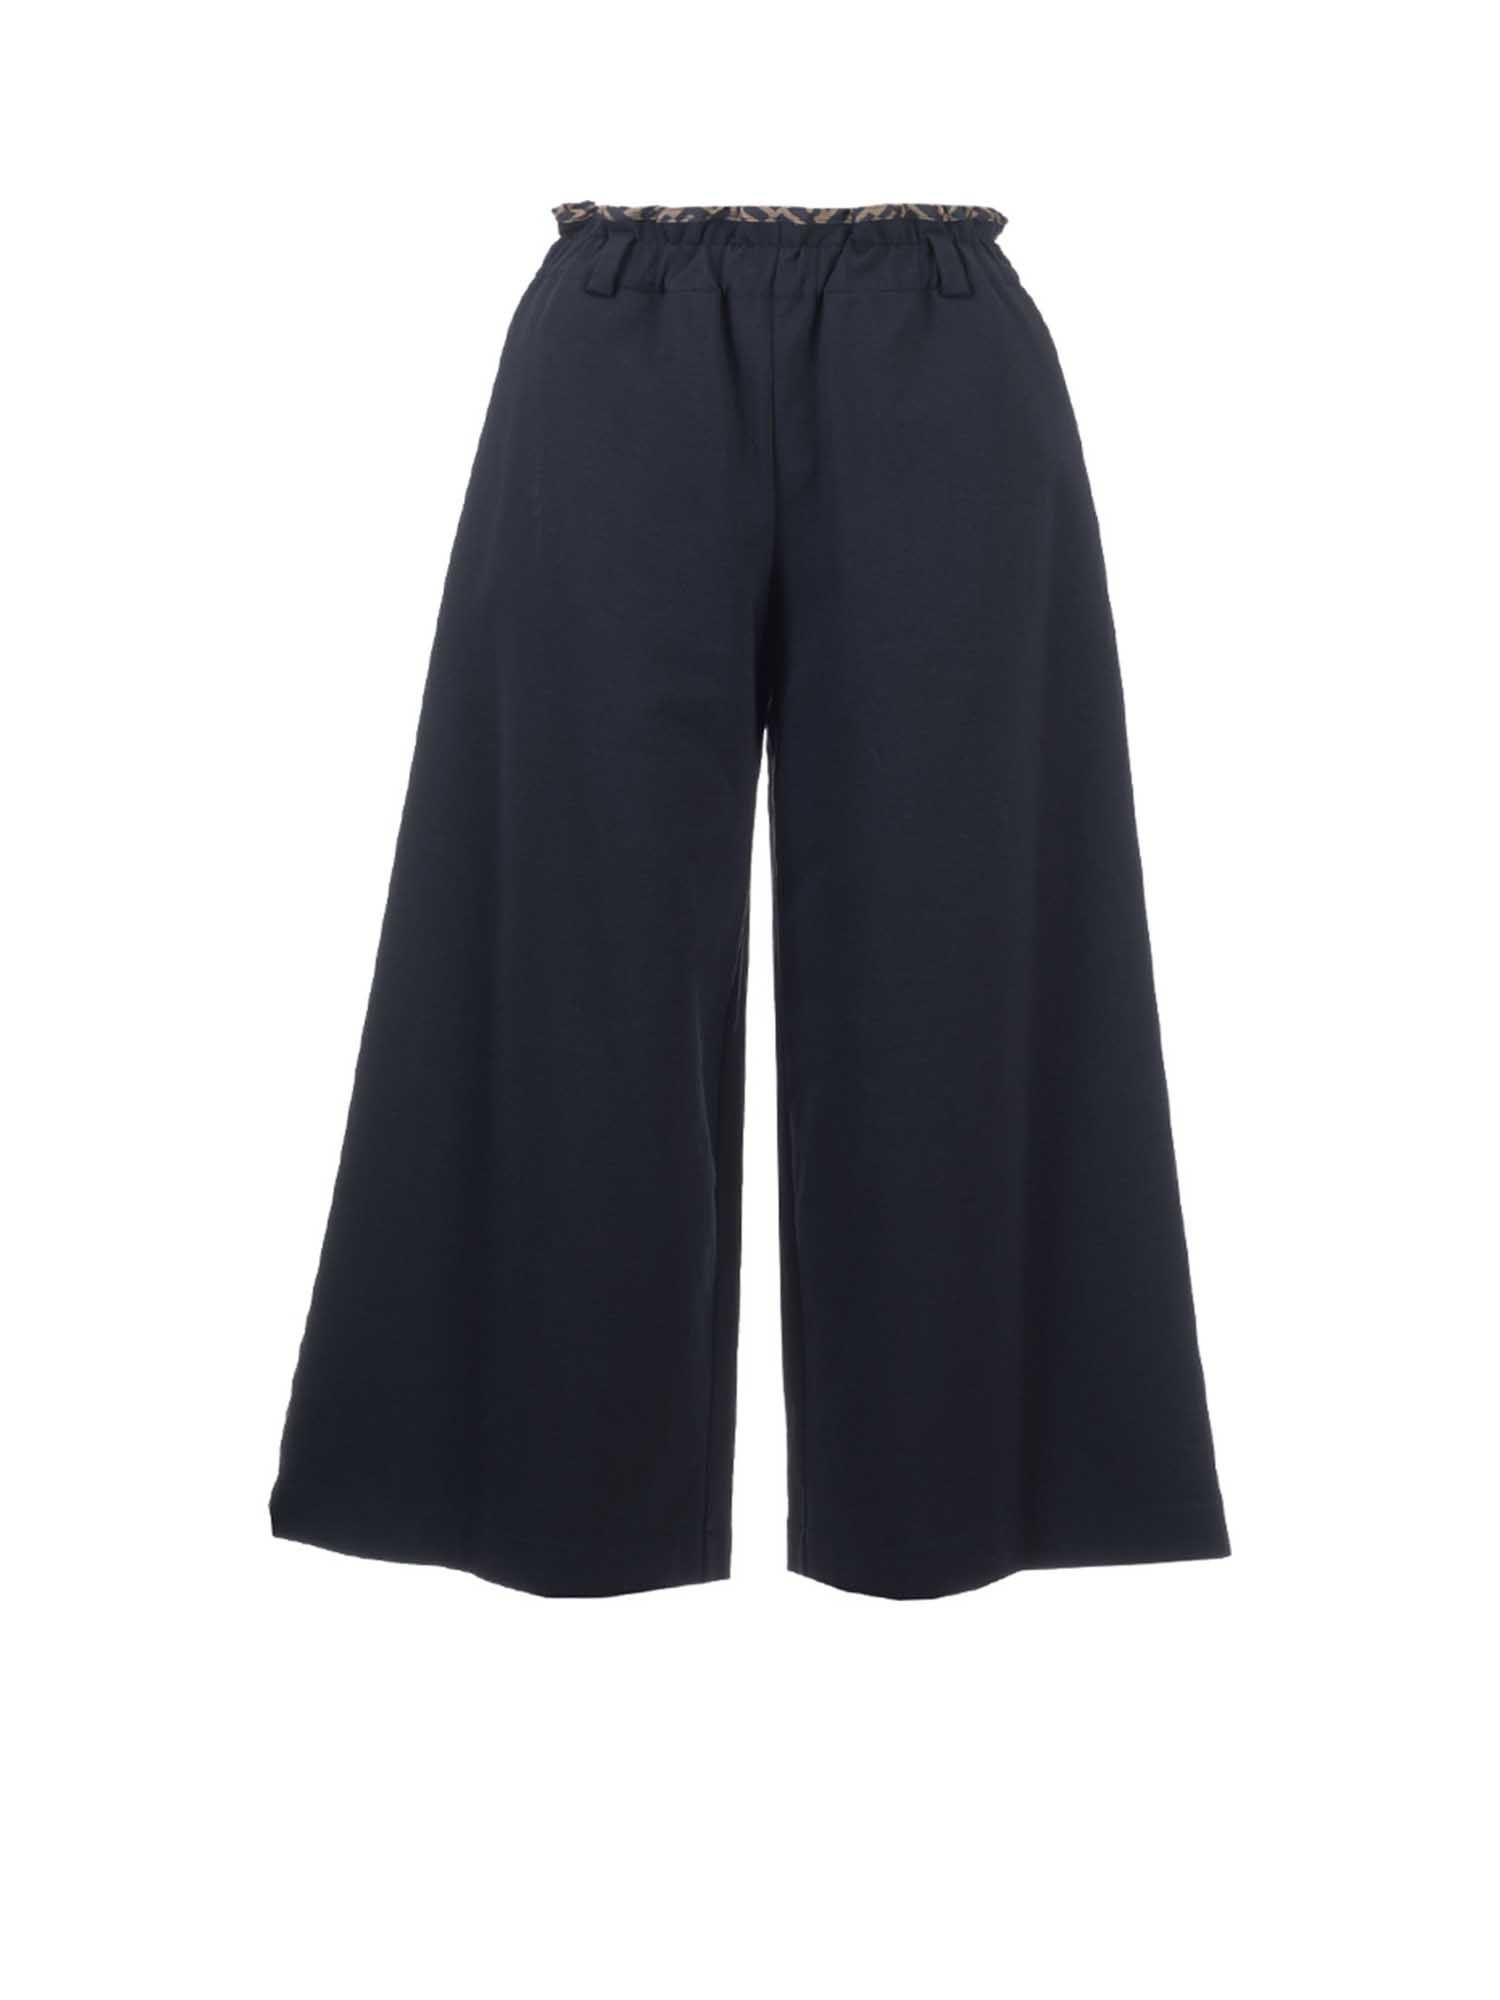 Fendi Jr FF BAND CROP PANTS IN BLACK